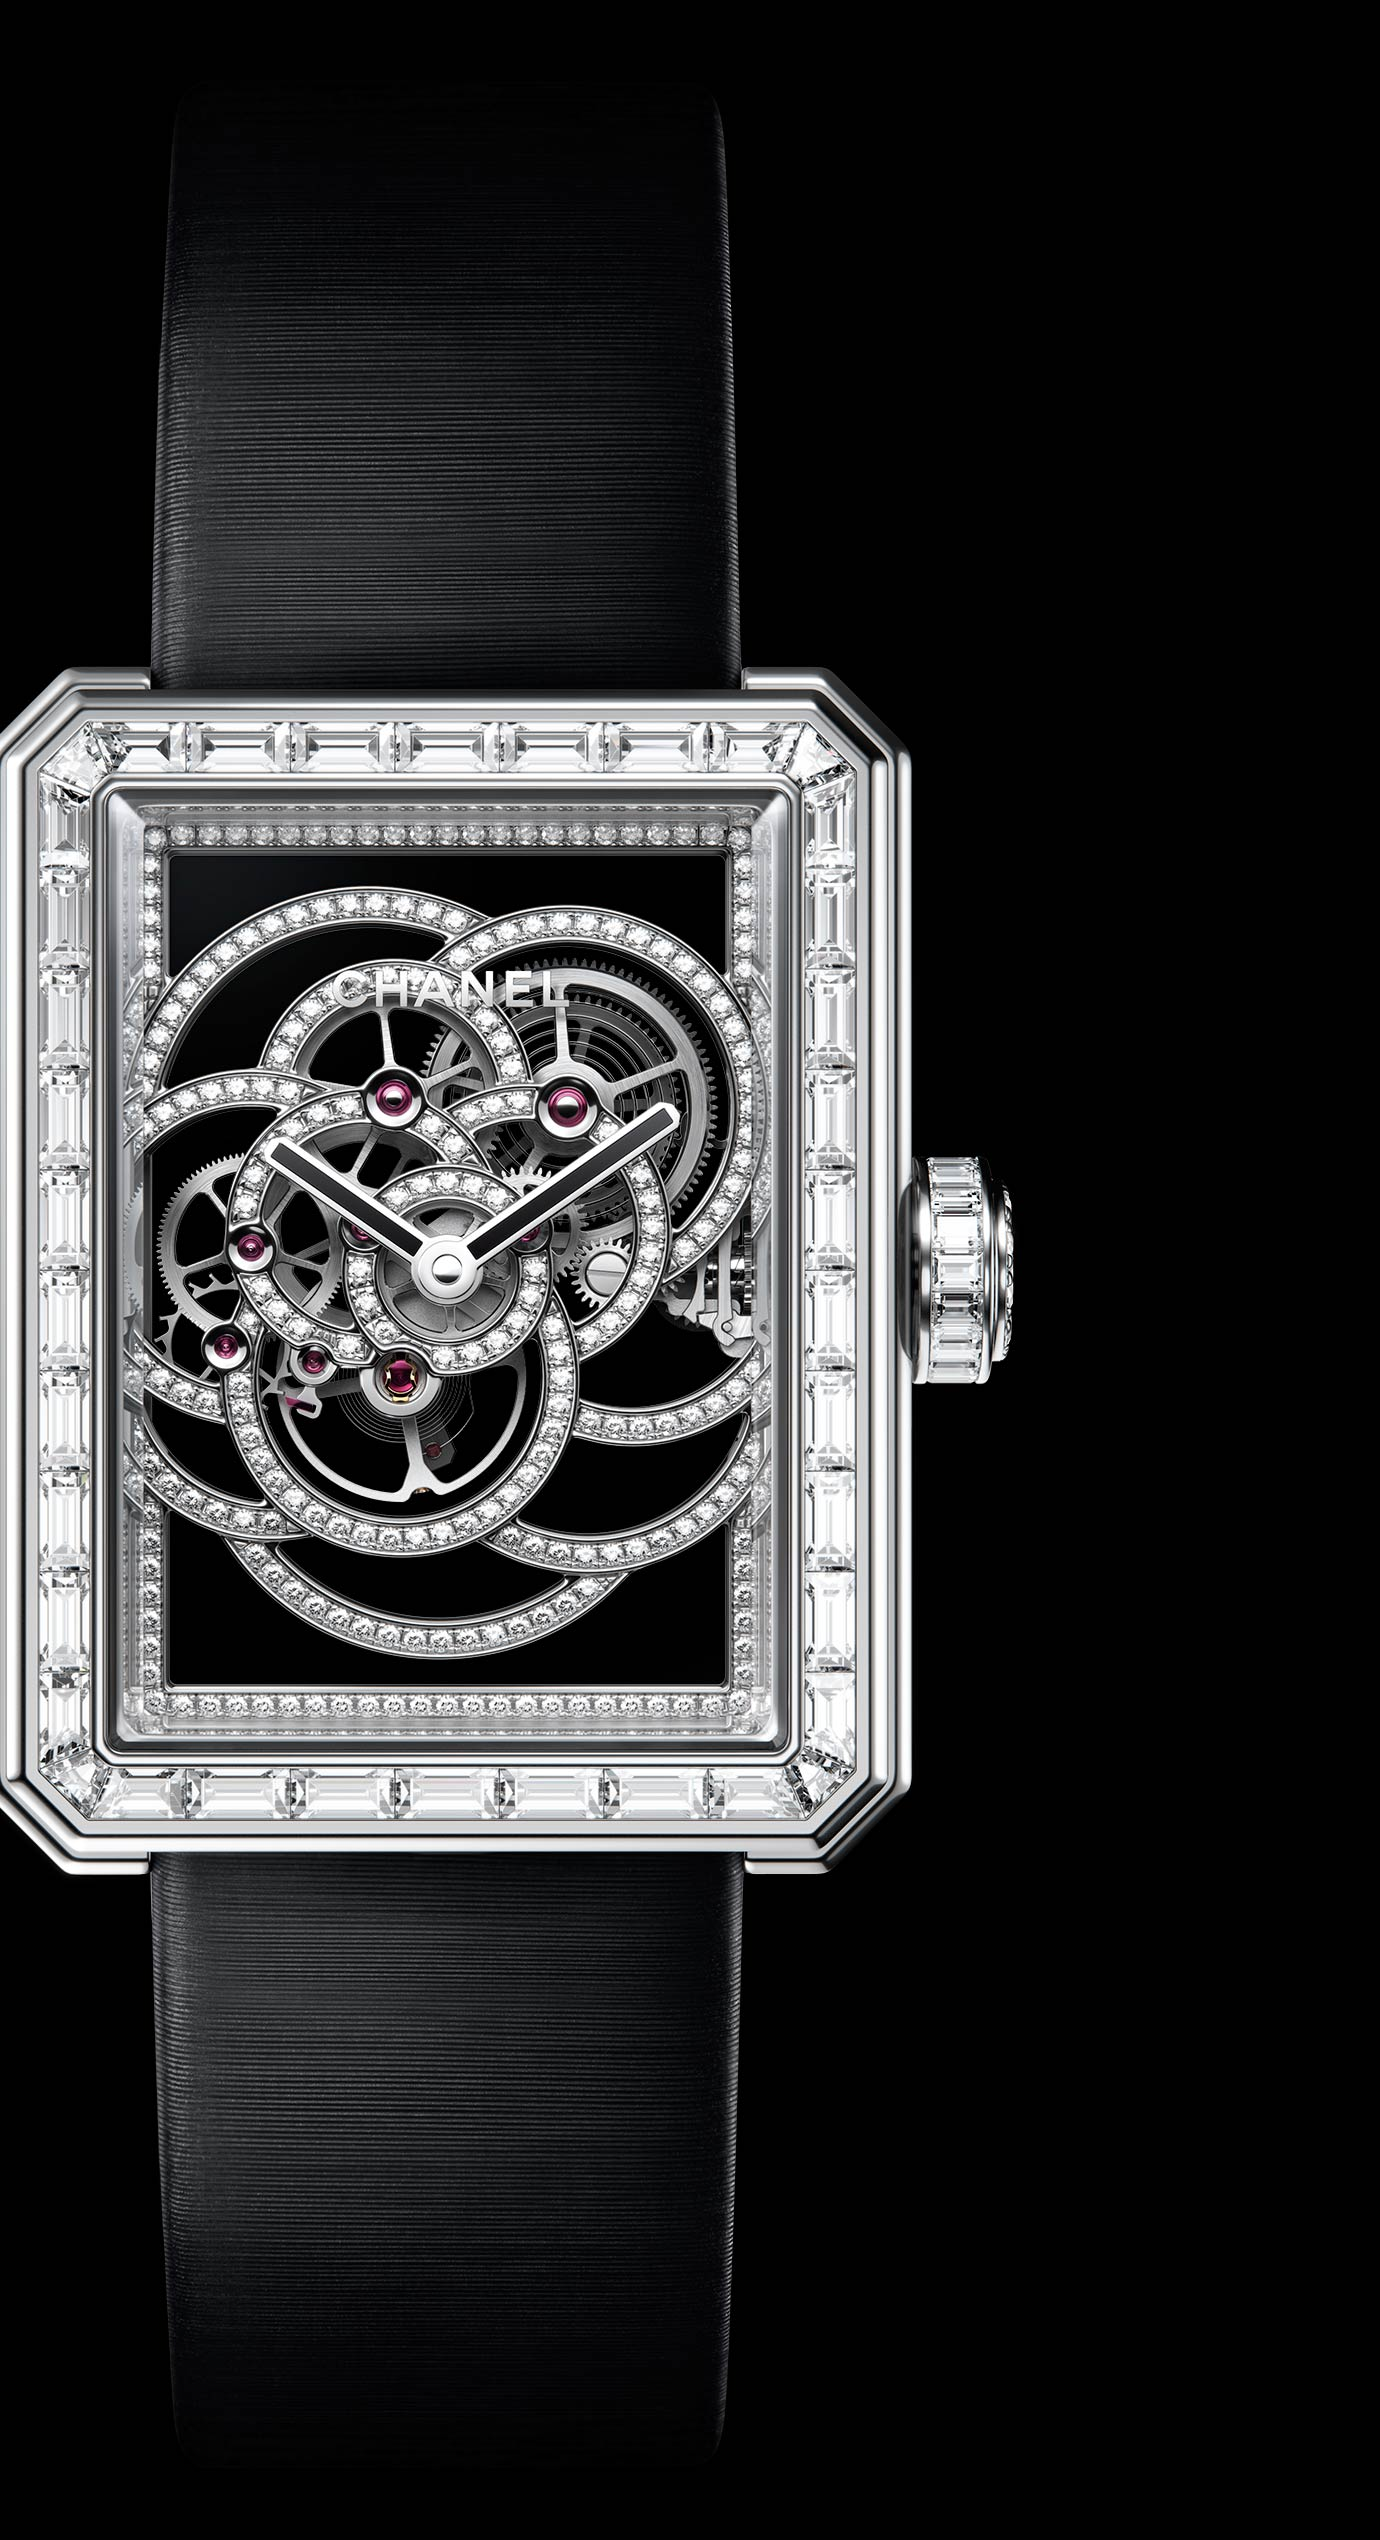 Première Camélia Skeleton watch in white gold, case, bezel and crown set with baguette-cut diamonds - Enlarged view